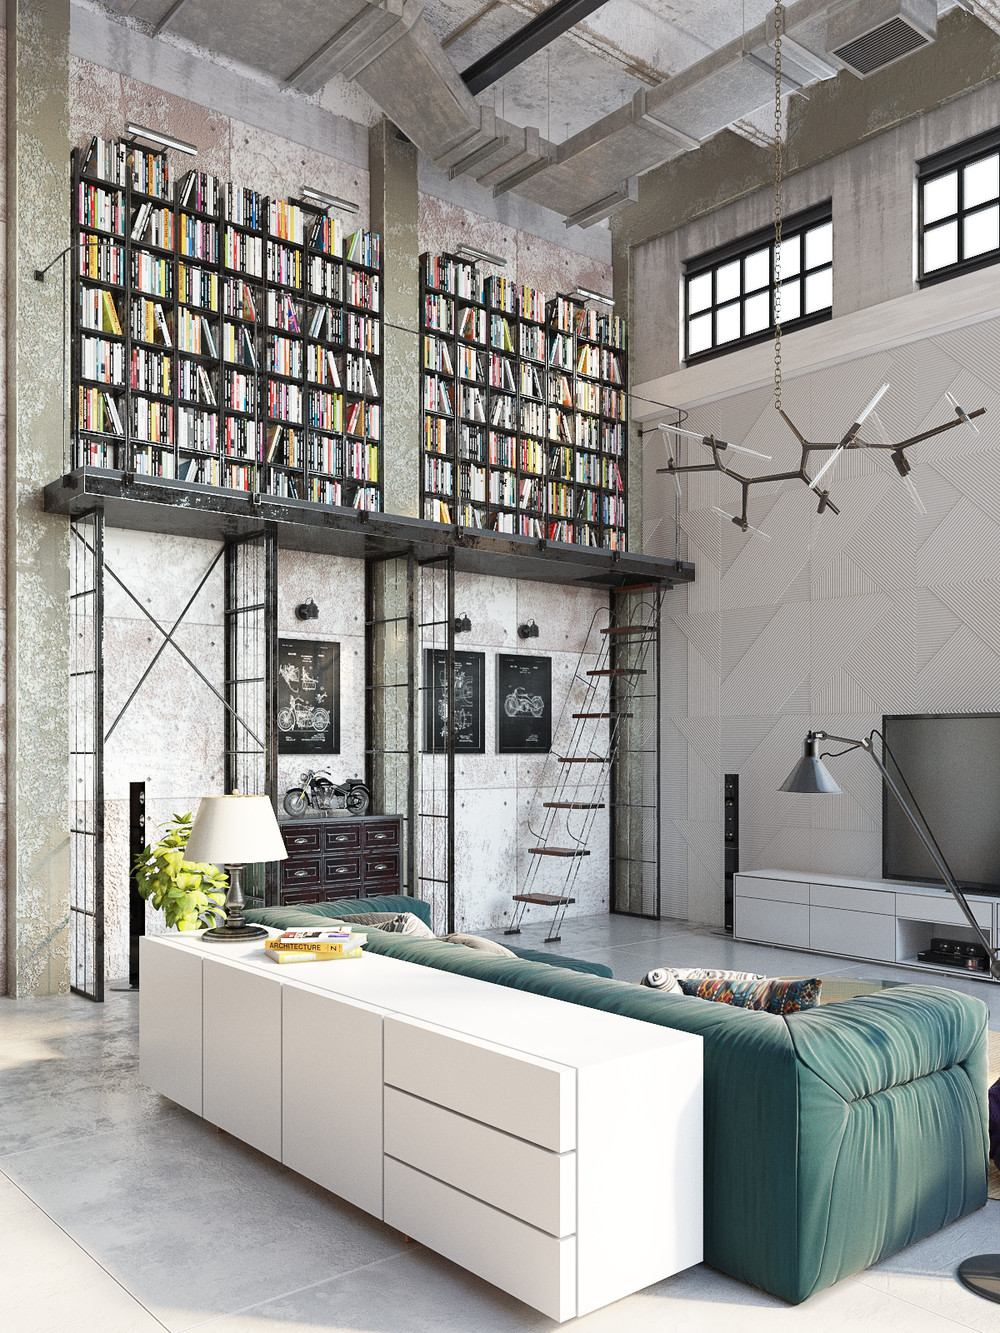 50 Stunning Interior Design Ideas That Will Take Your House To Another Level: Industrial Style Living Room Design: The Essential Guide